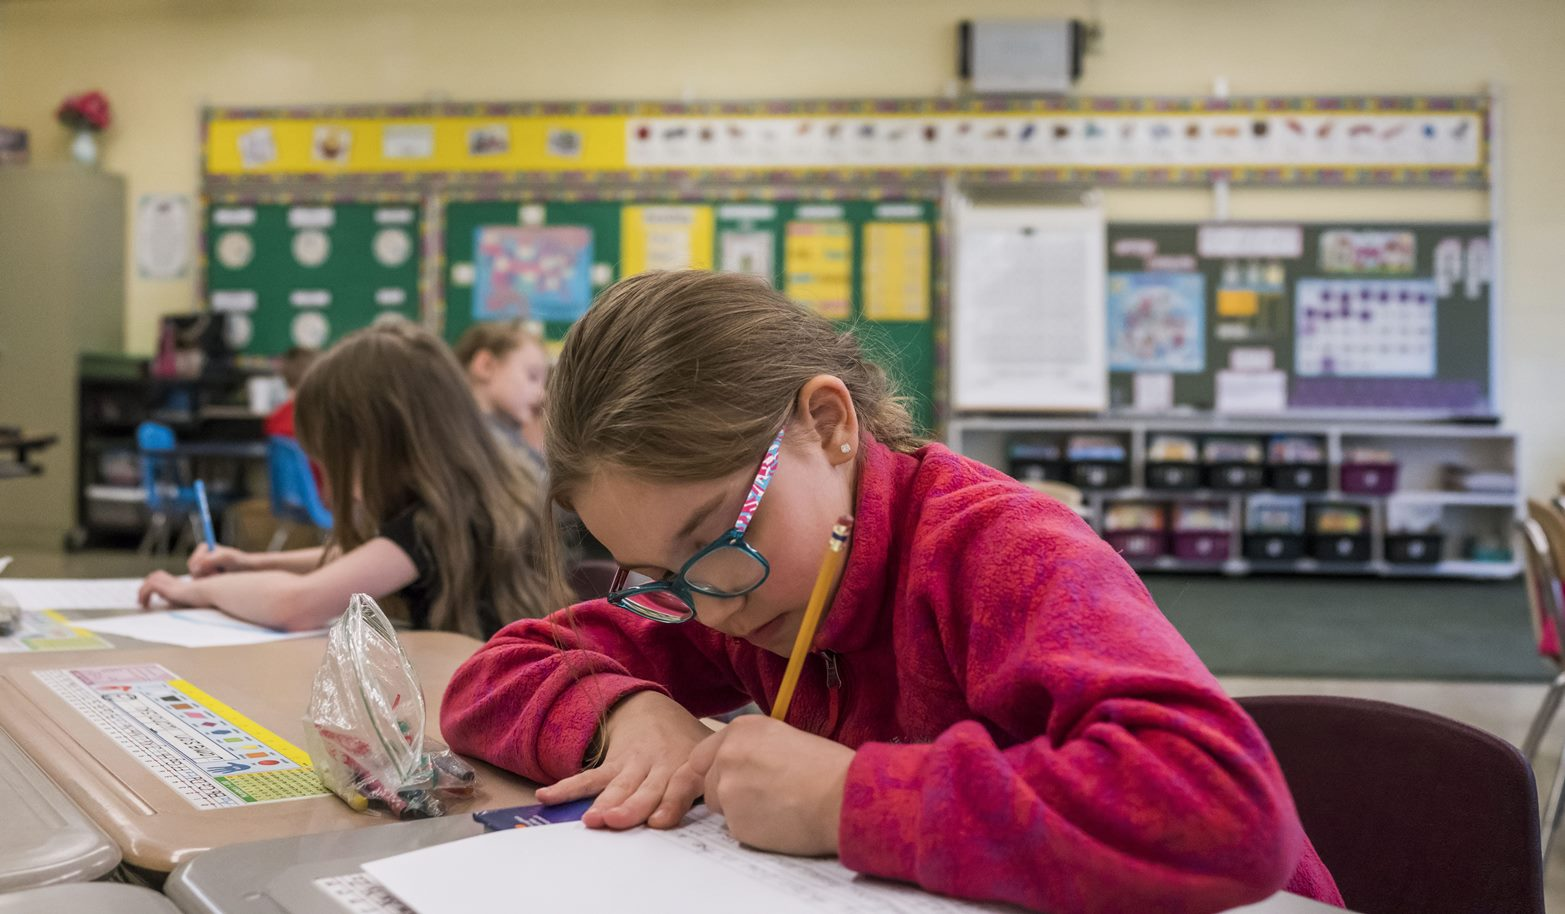 Isabella Gascon works on a class assignment in Mrs. Maida's first grade class at Clinton Street Elementary School in West Seneca.  (Derek Gee/Buffalo News)